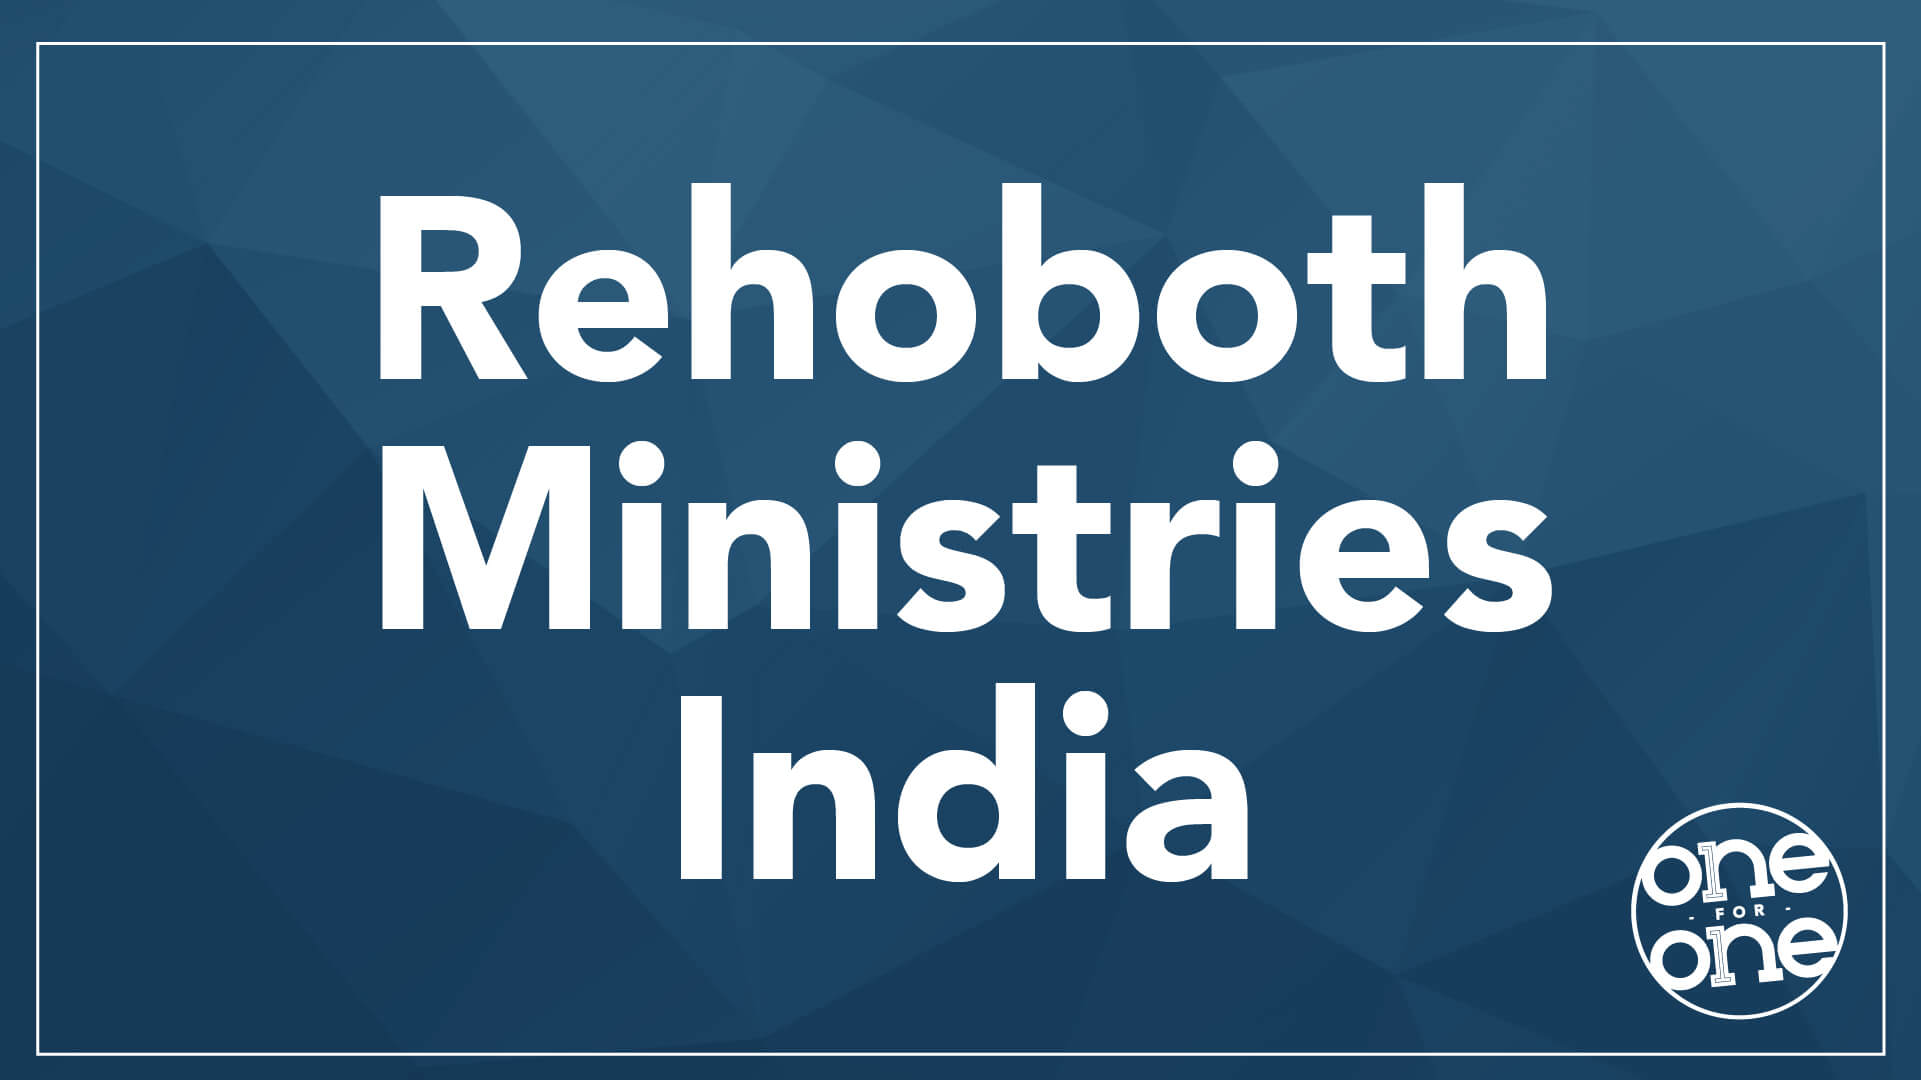 Rehoboth Ministries India